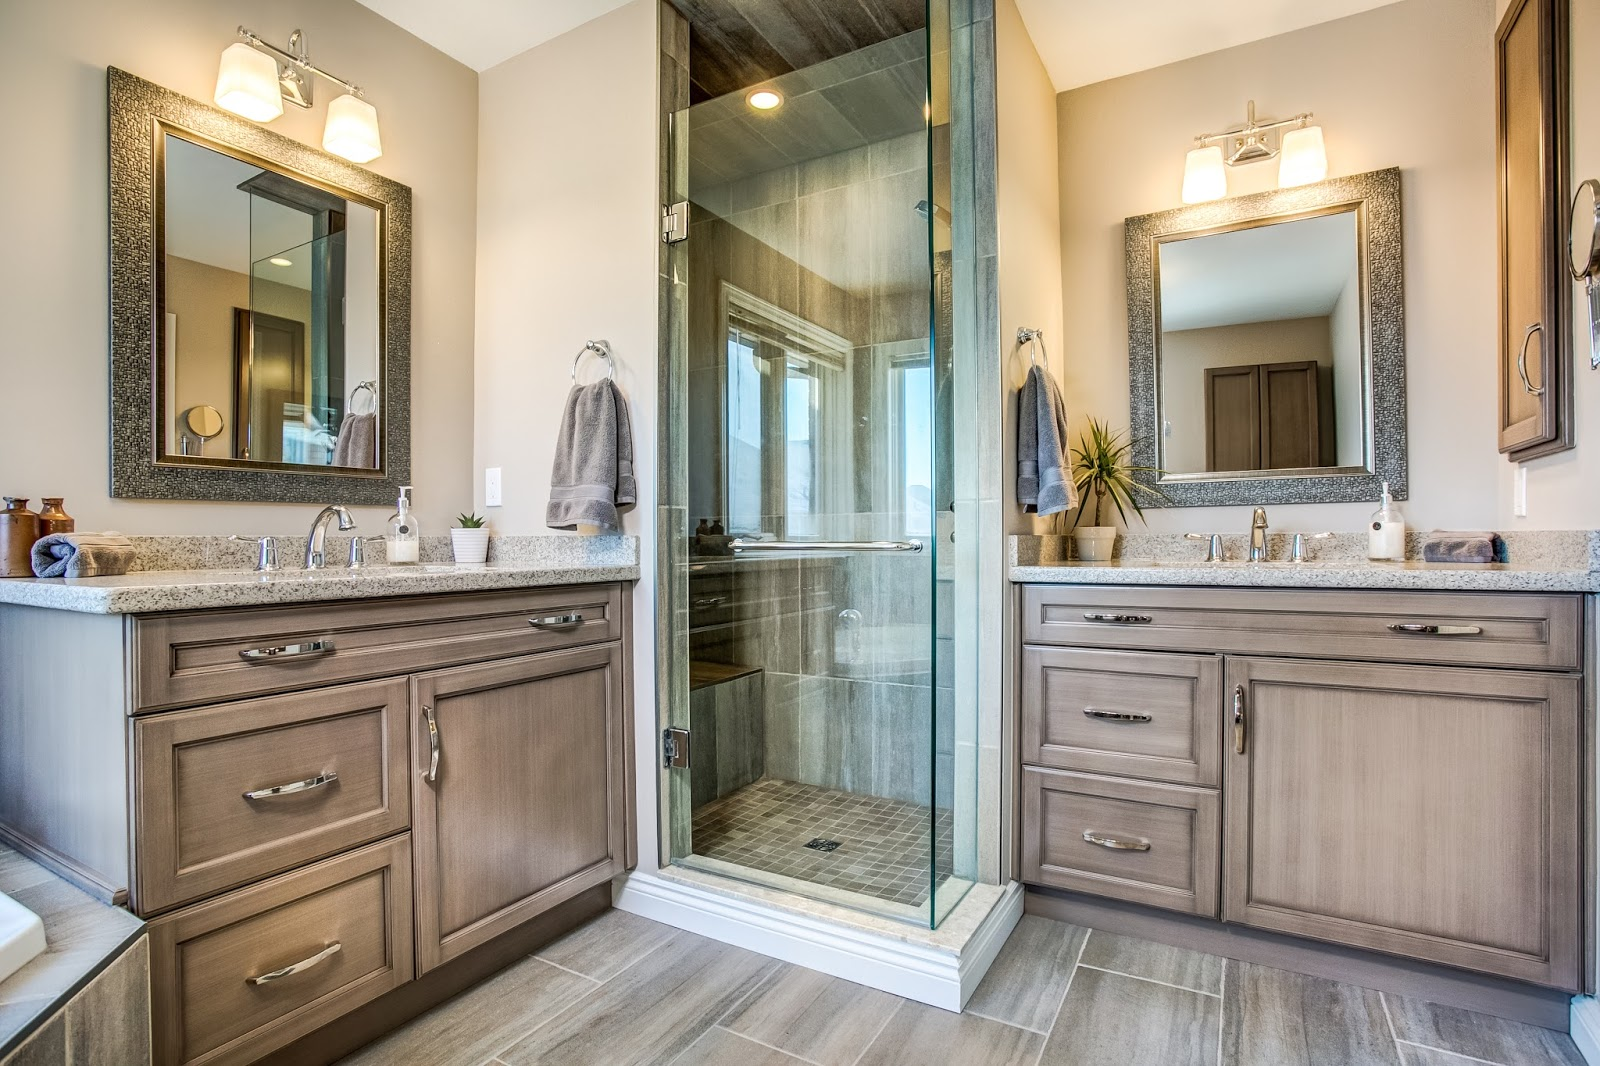 Bathroom remodel cost how much you should pay to remodel for Average cost for small bathroom remodel